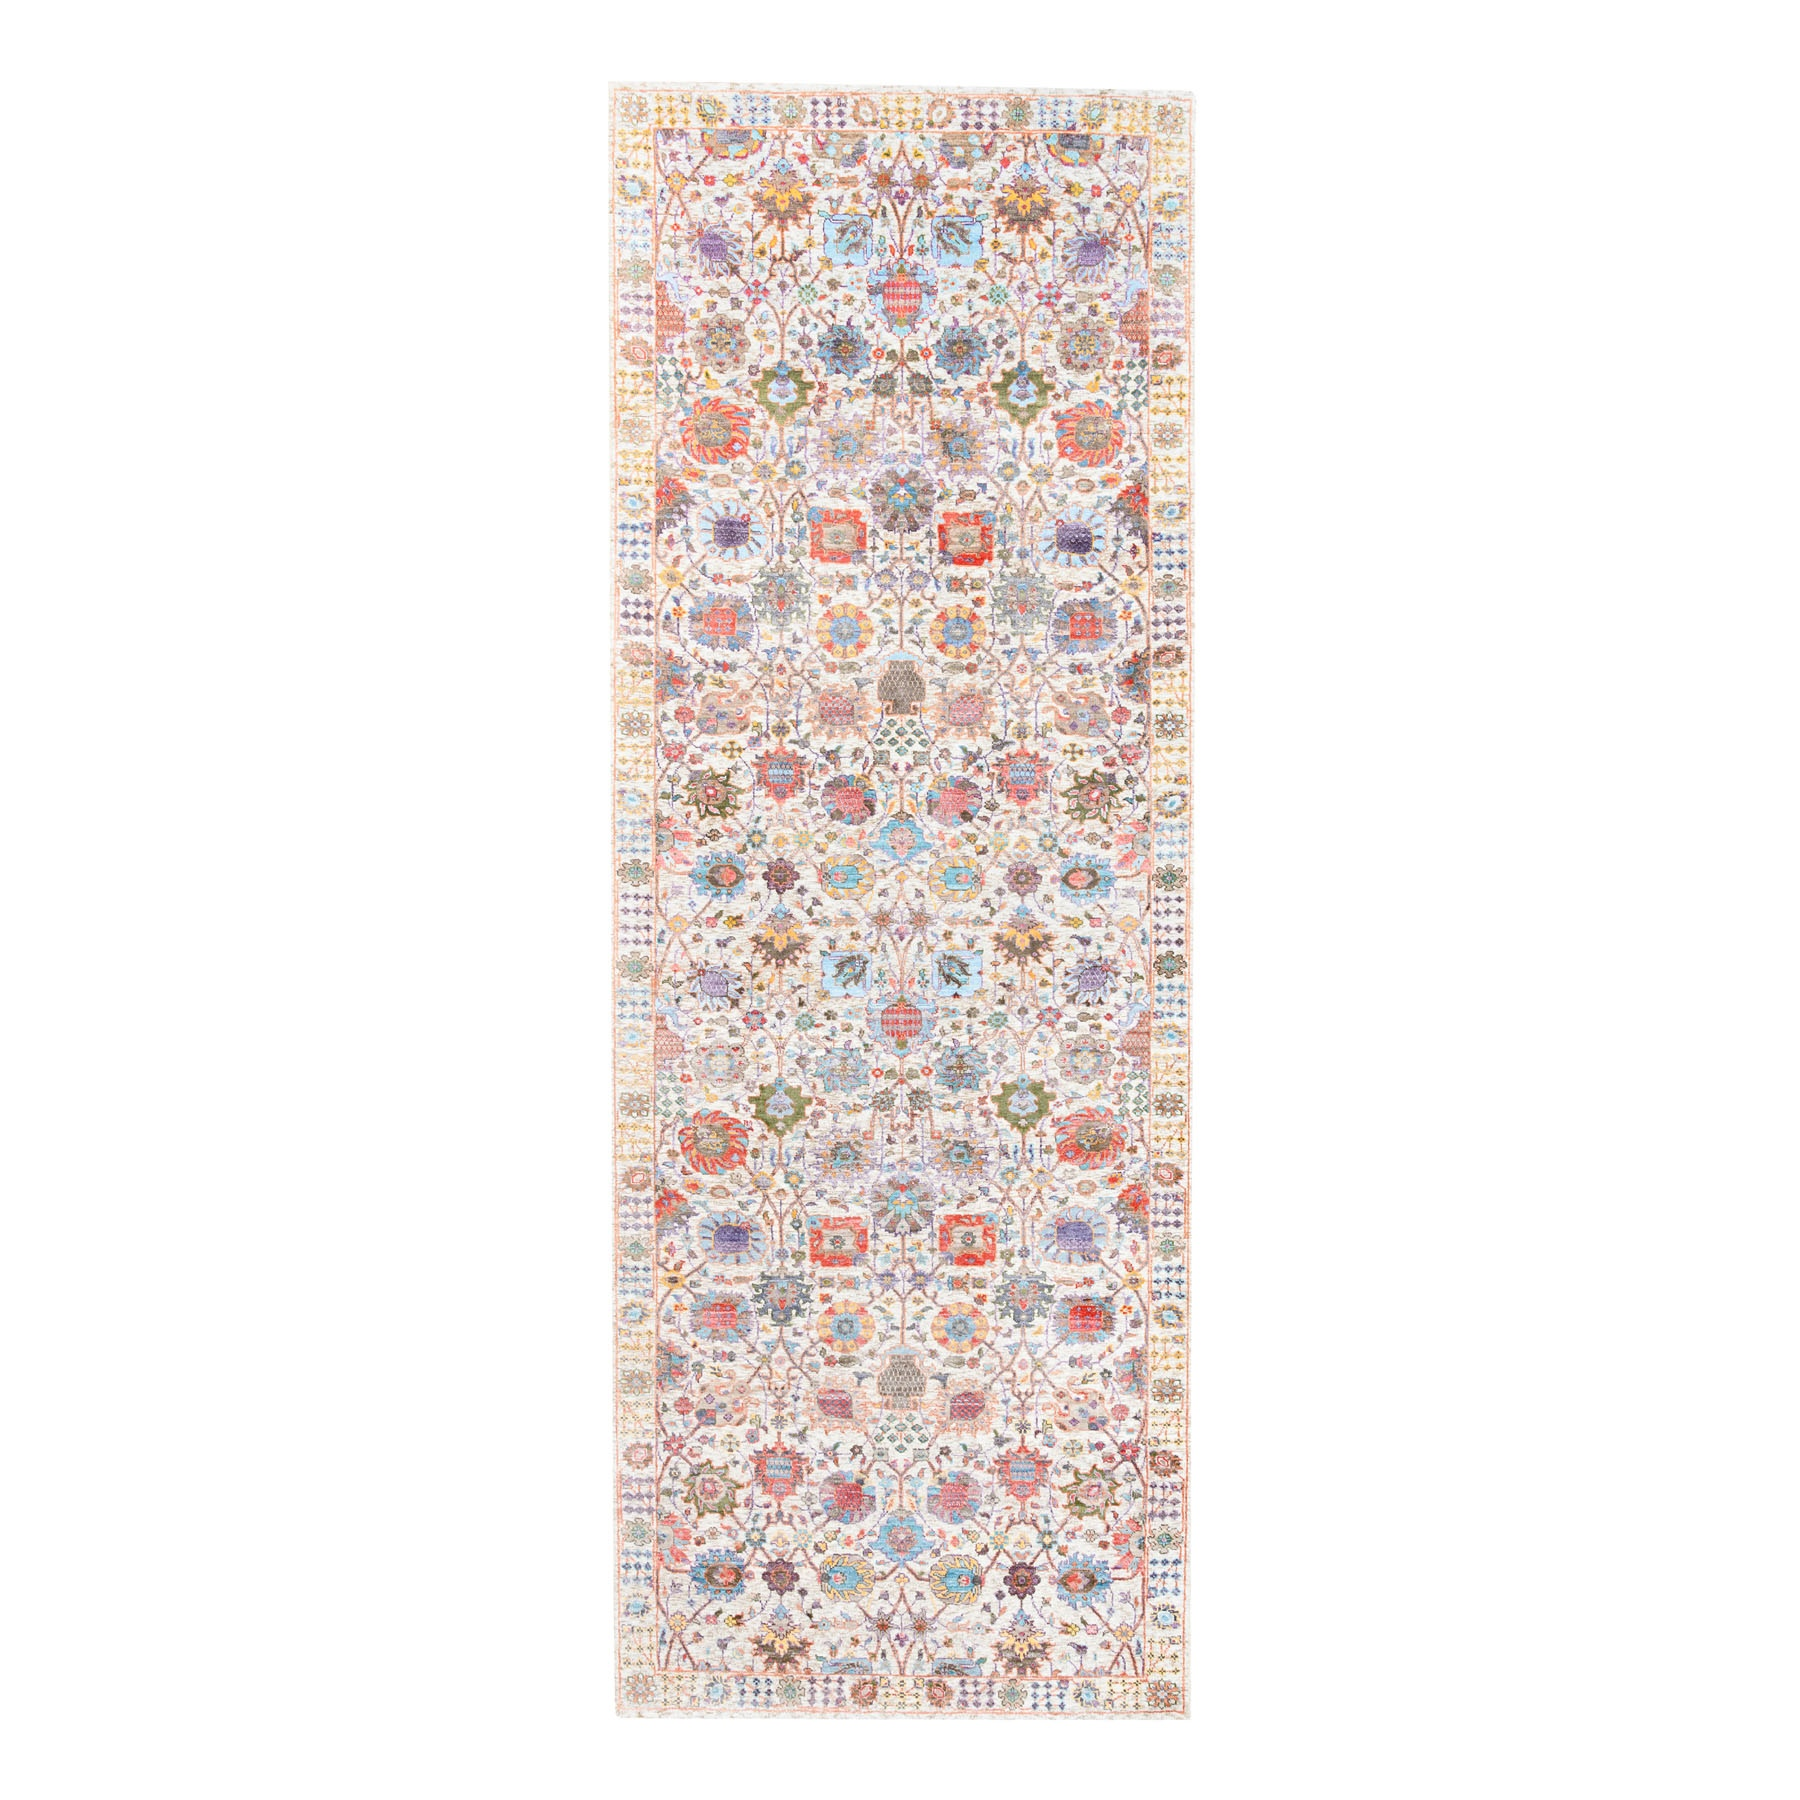 Transitional Rugs LUV560565